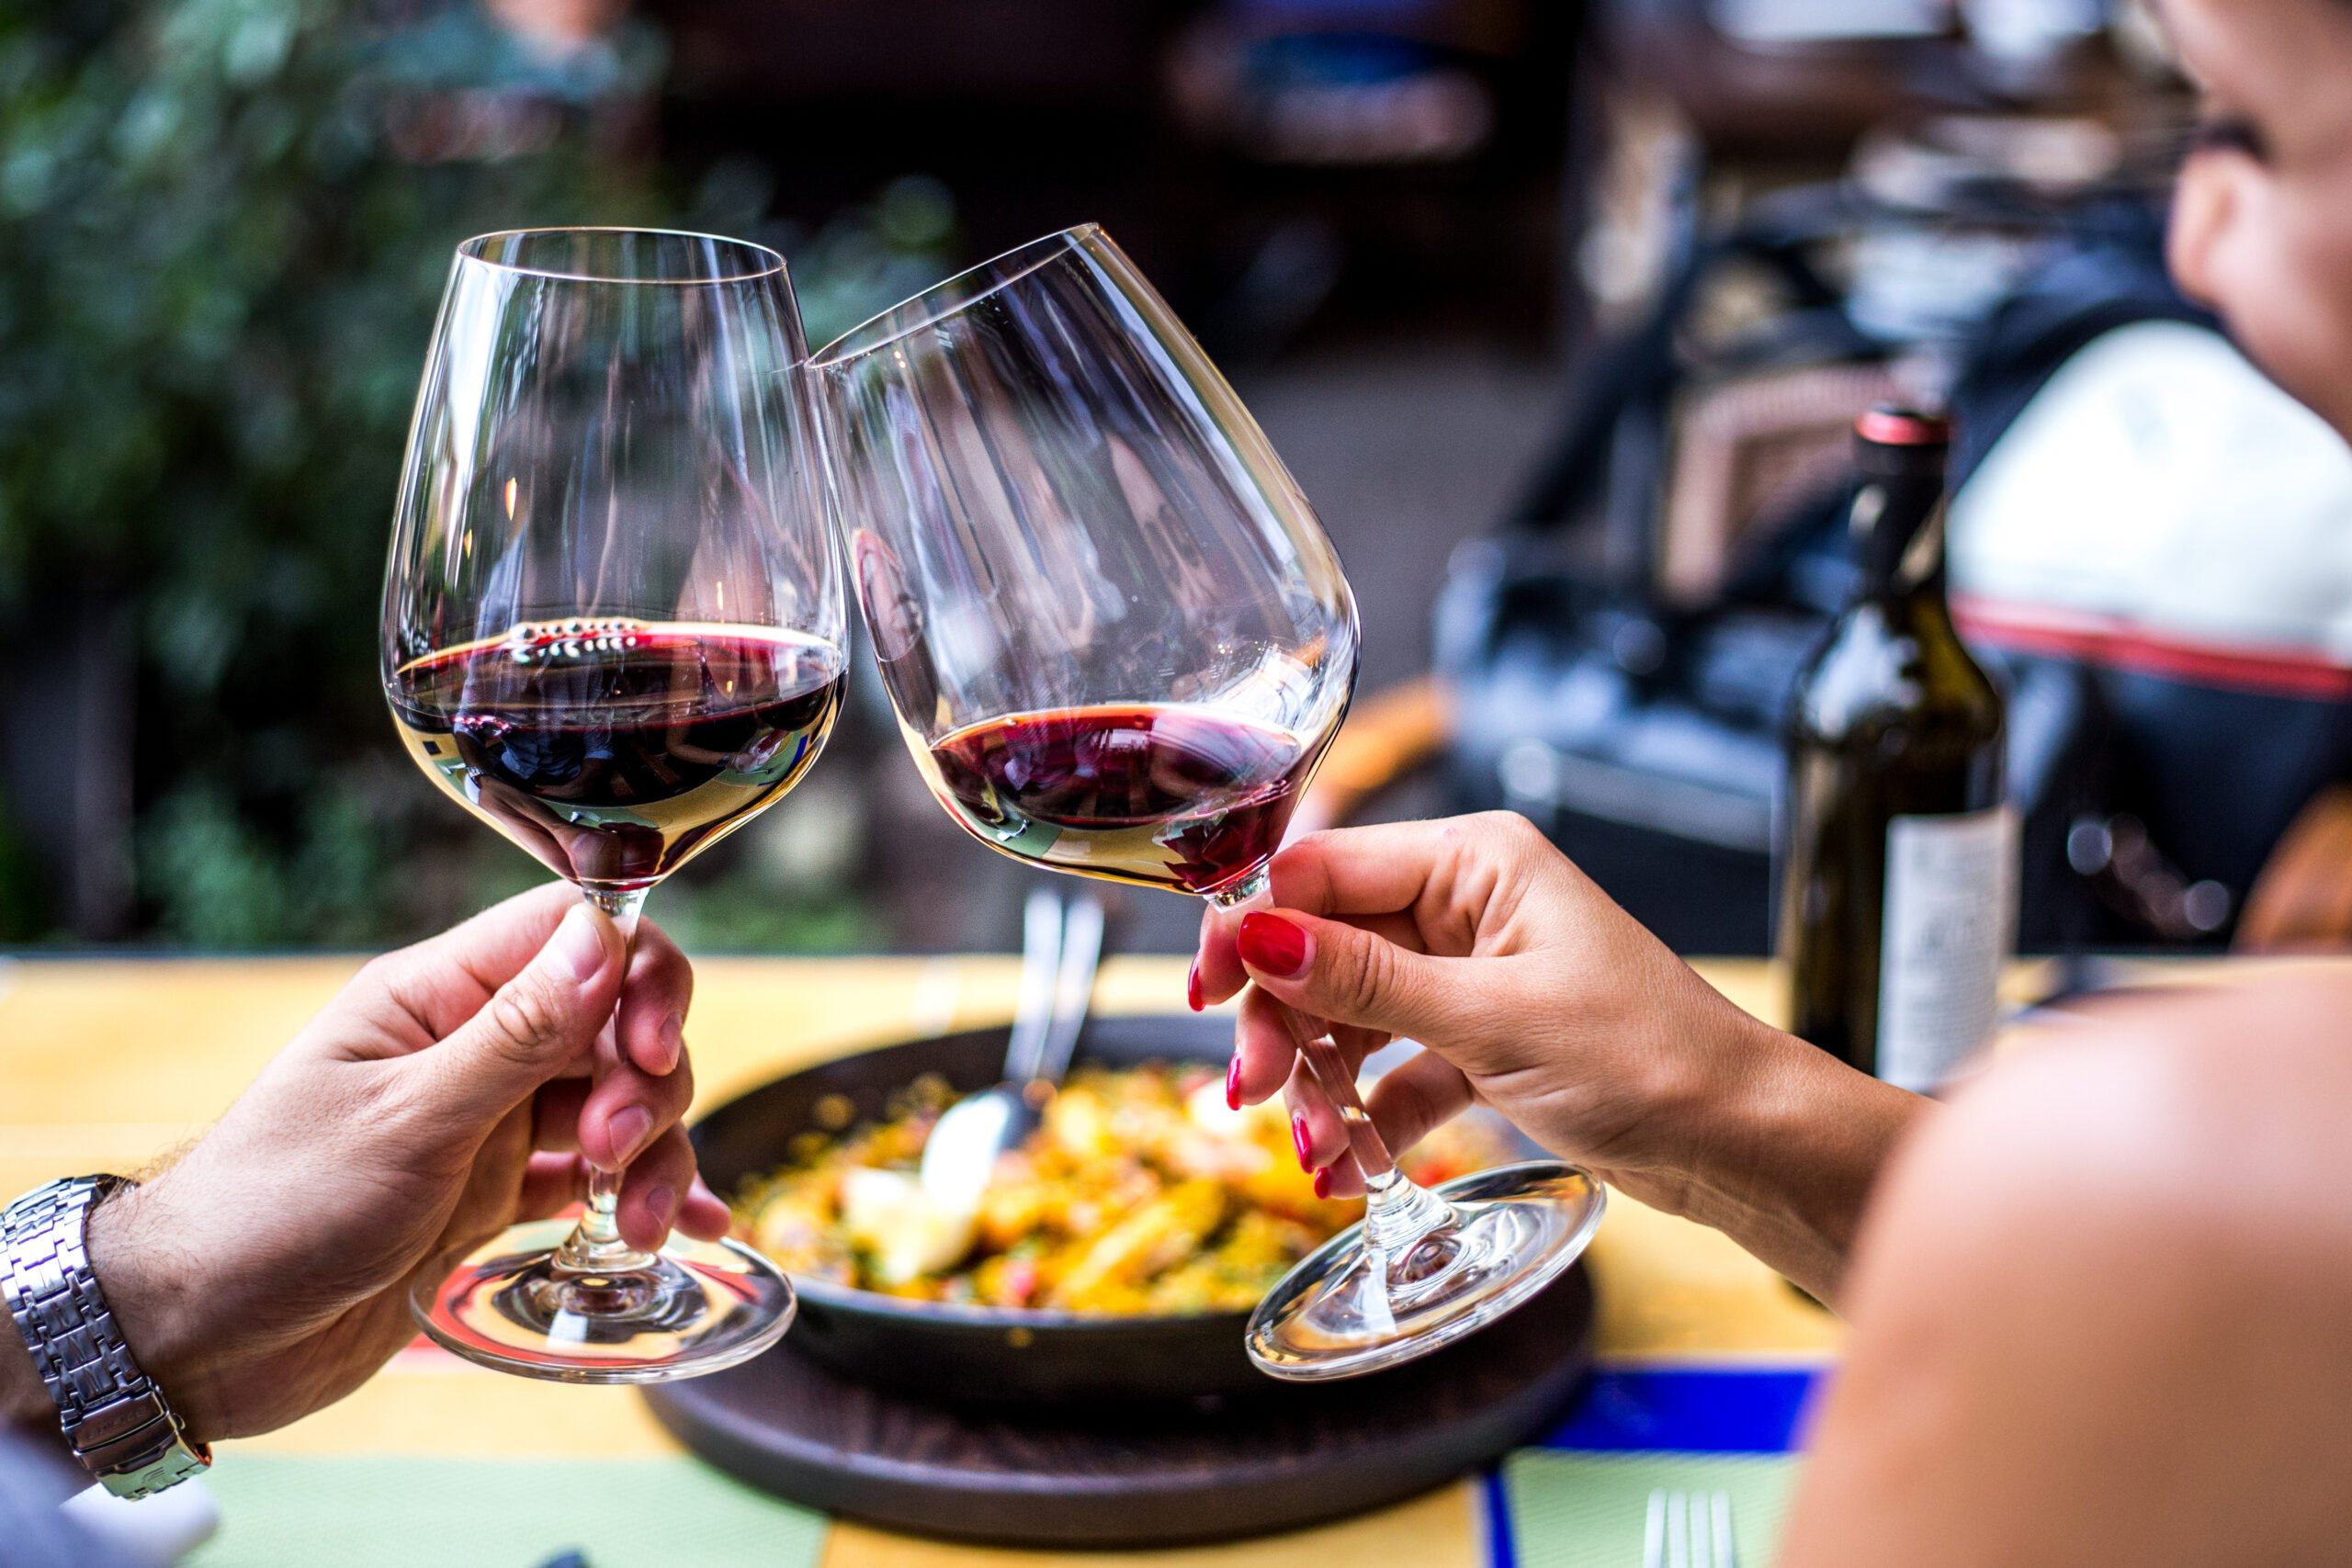 Taste A Delicious Wine Over Your Tapas On The Alternative Market And Tapas Tour In Seville